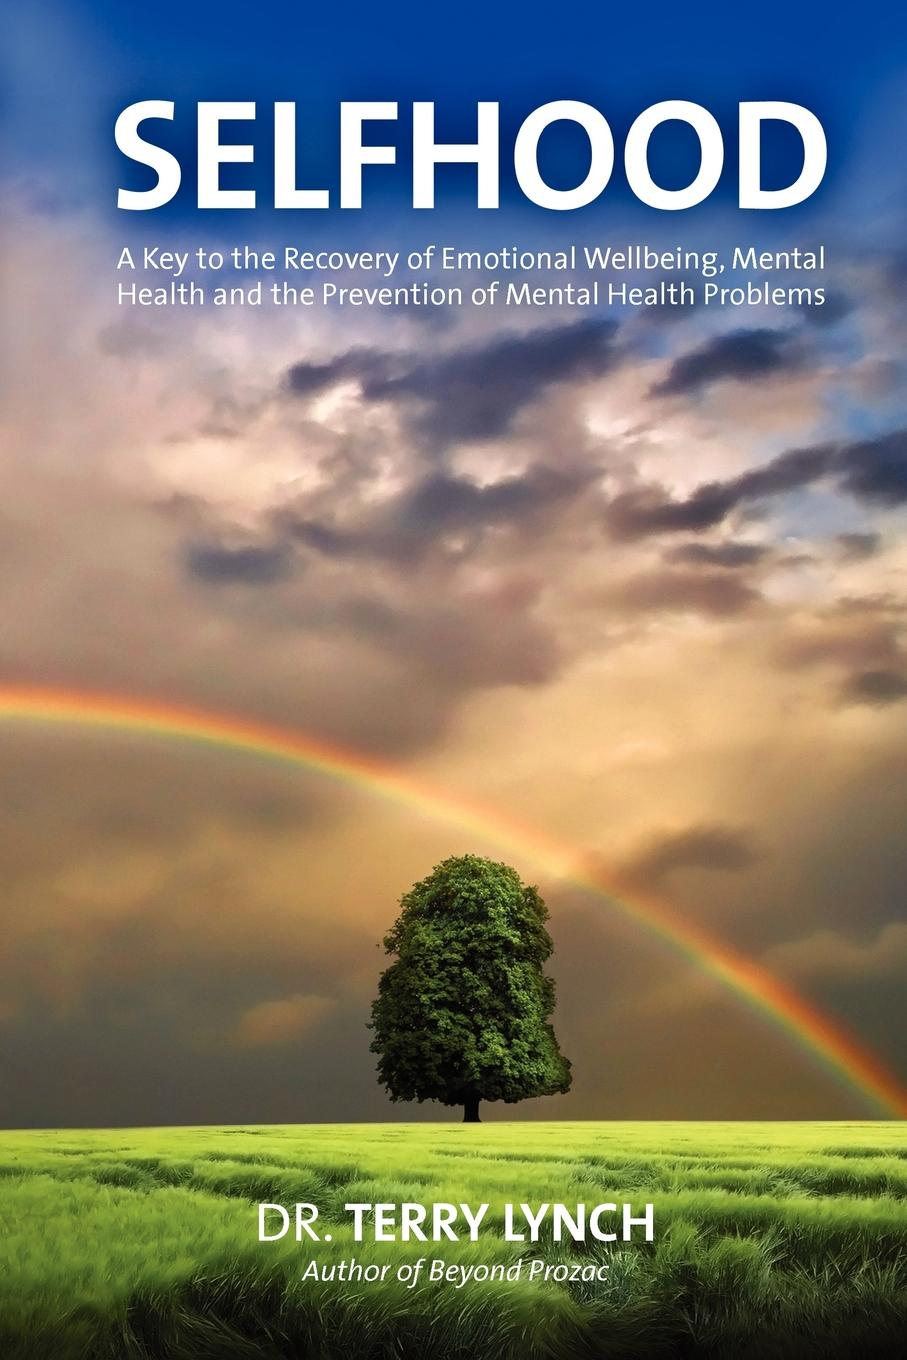 Terry Lynch Selfhood. A Key to the Recovery of Emotional Wellbeing, Mental Health and the Prevention of Mental Health Problems mental